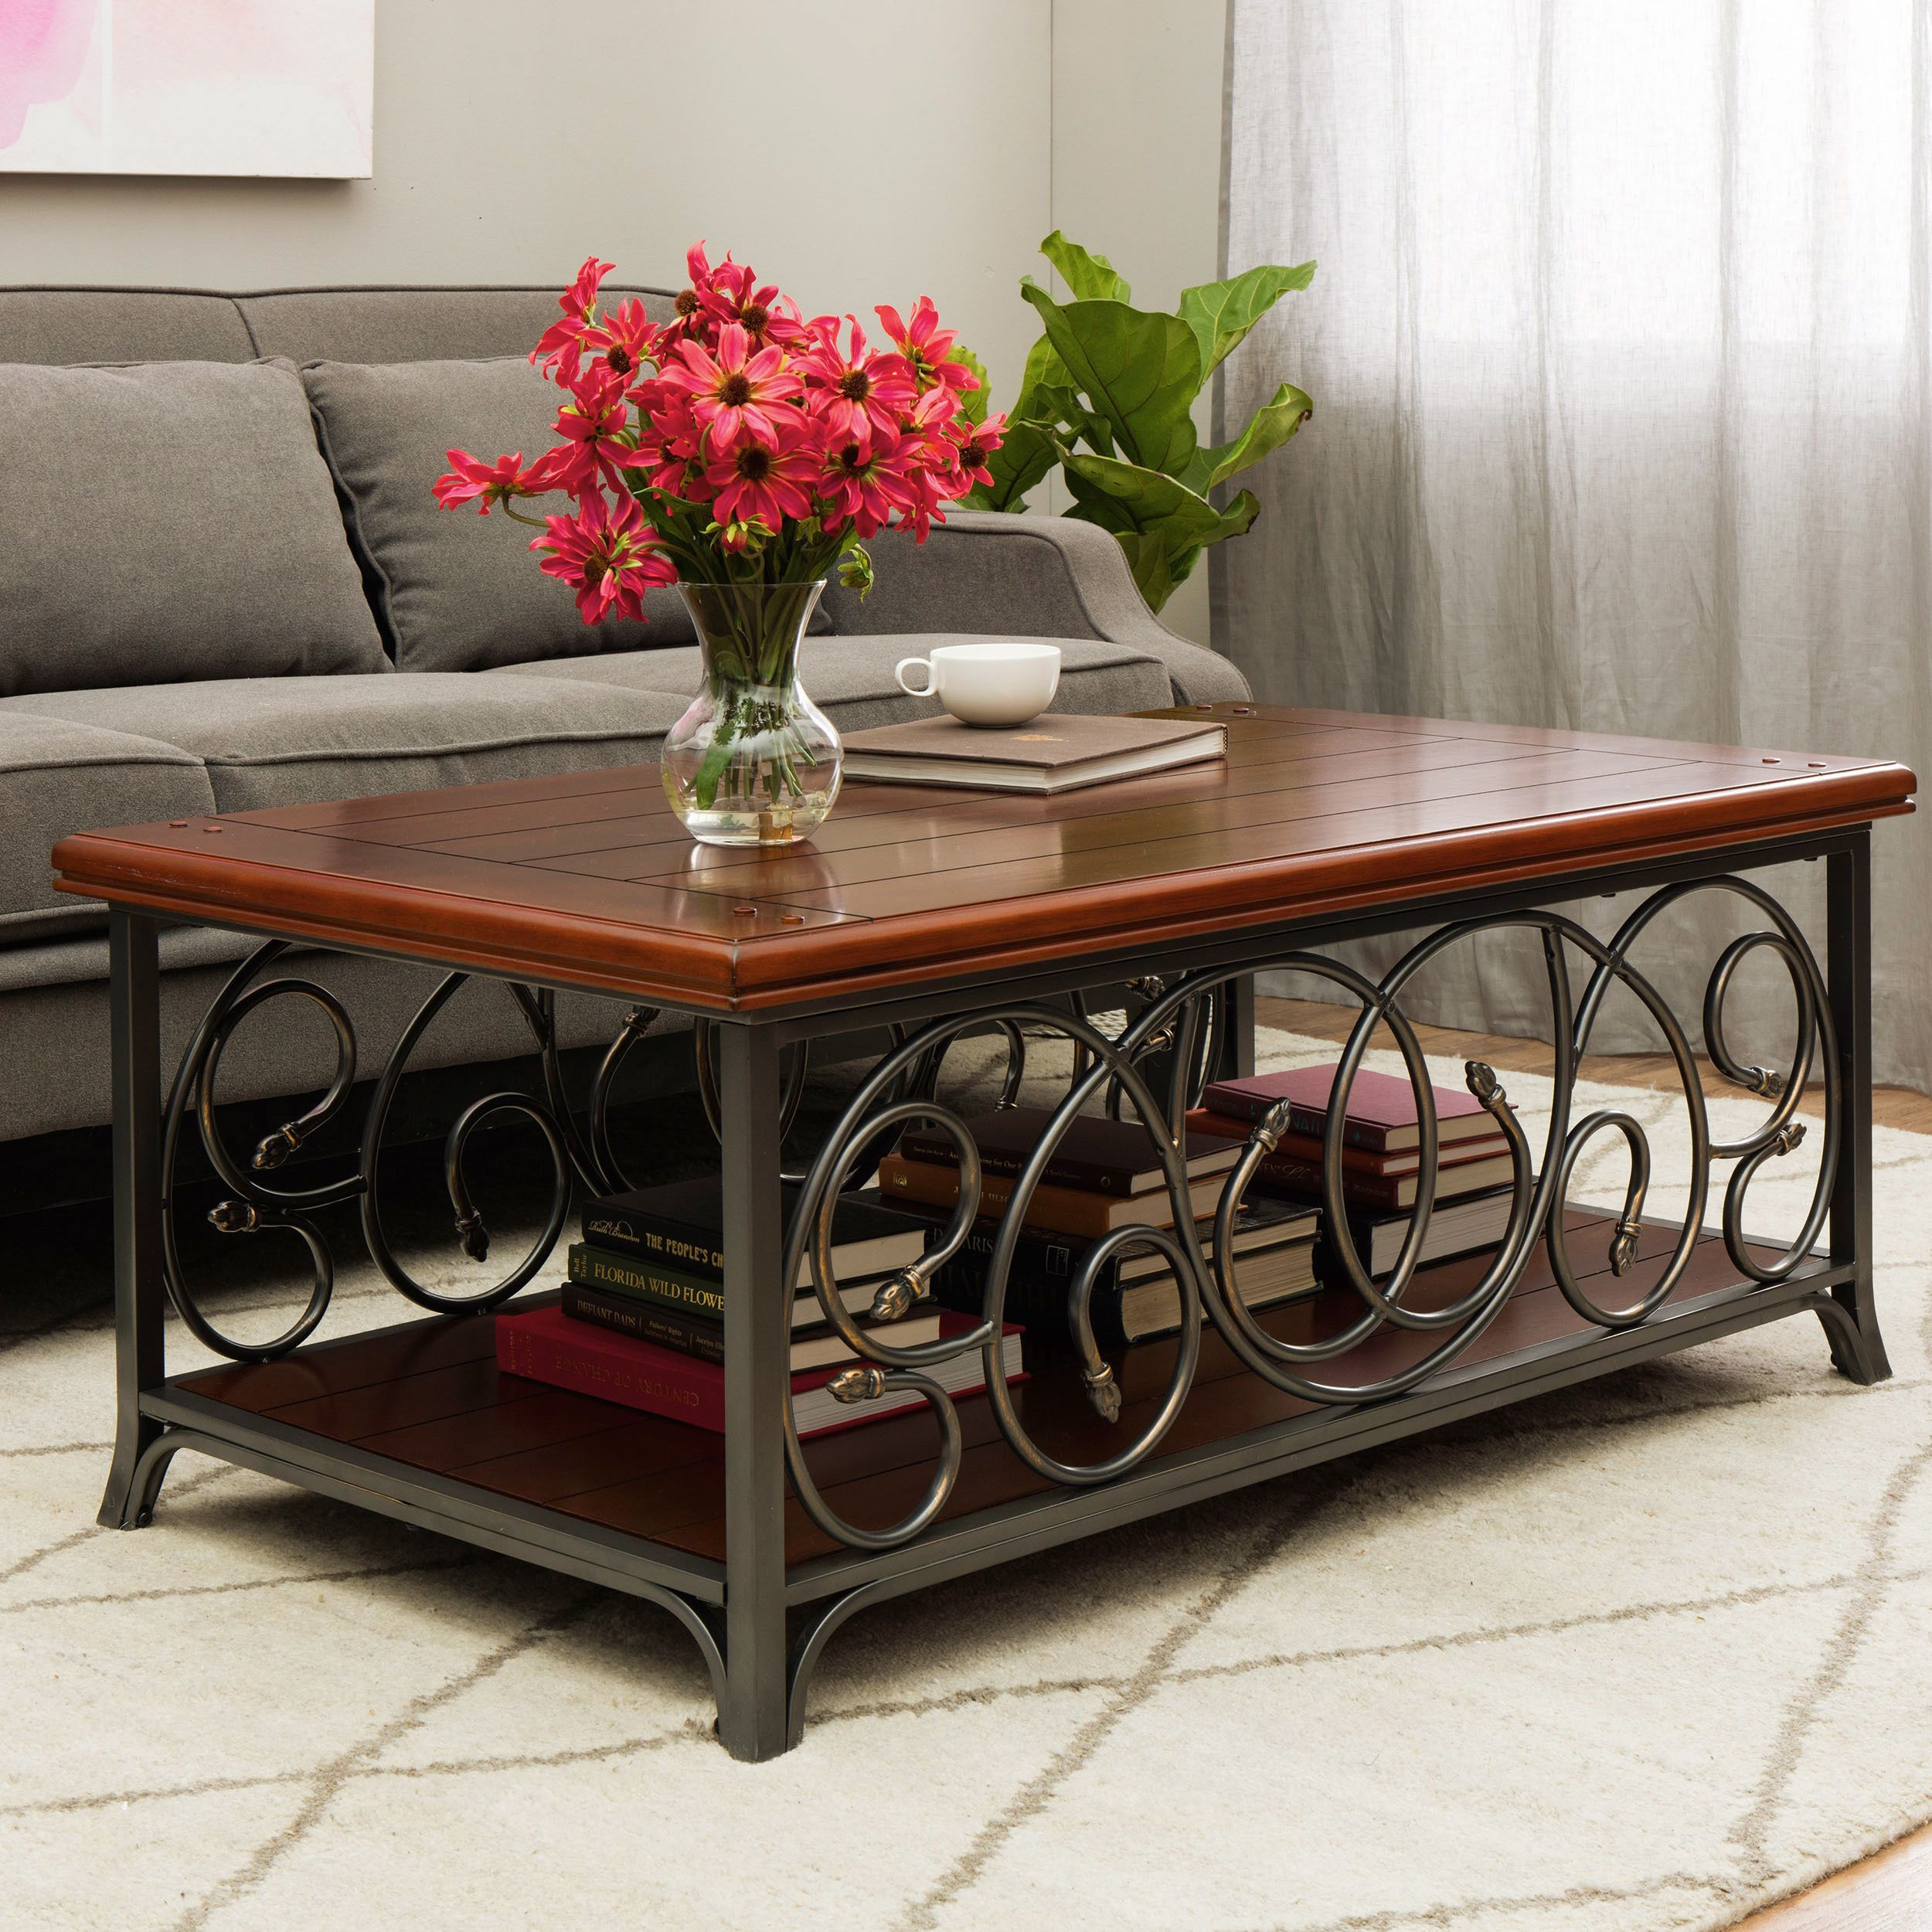 Copper Grove Scrolled Metal And Wood Coffee Table